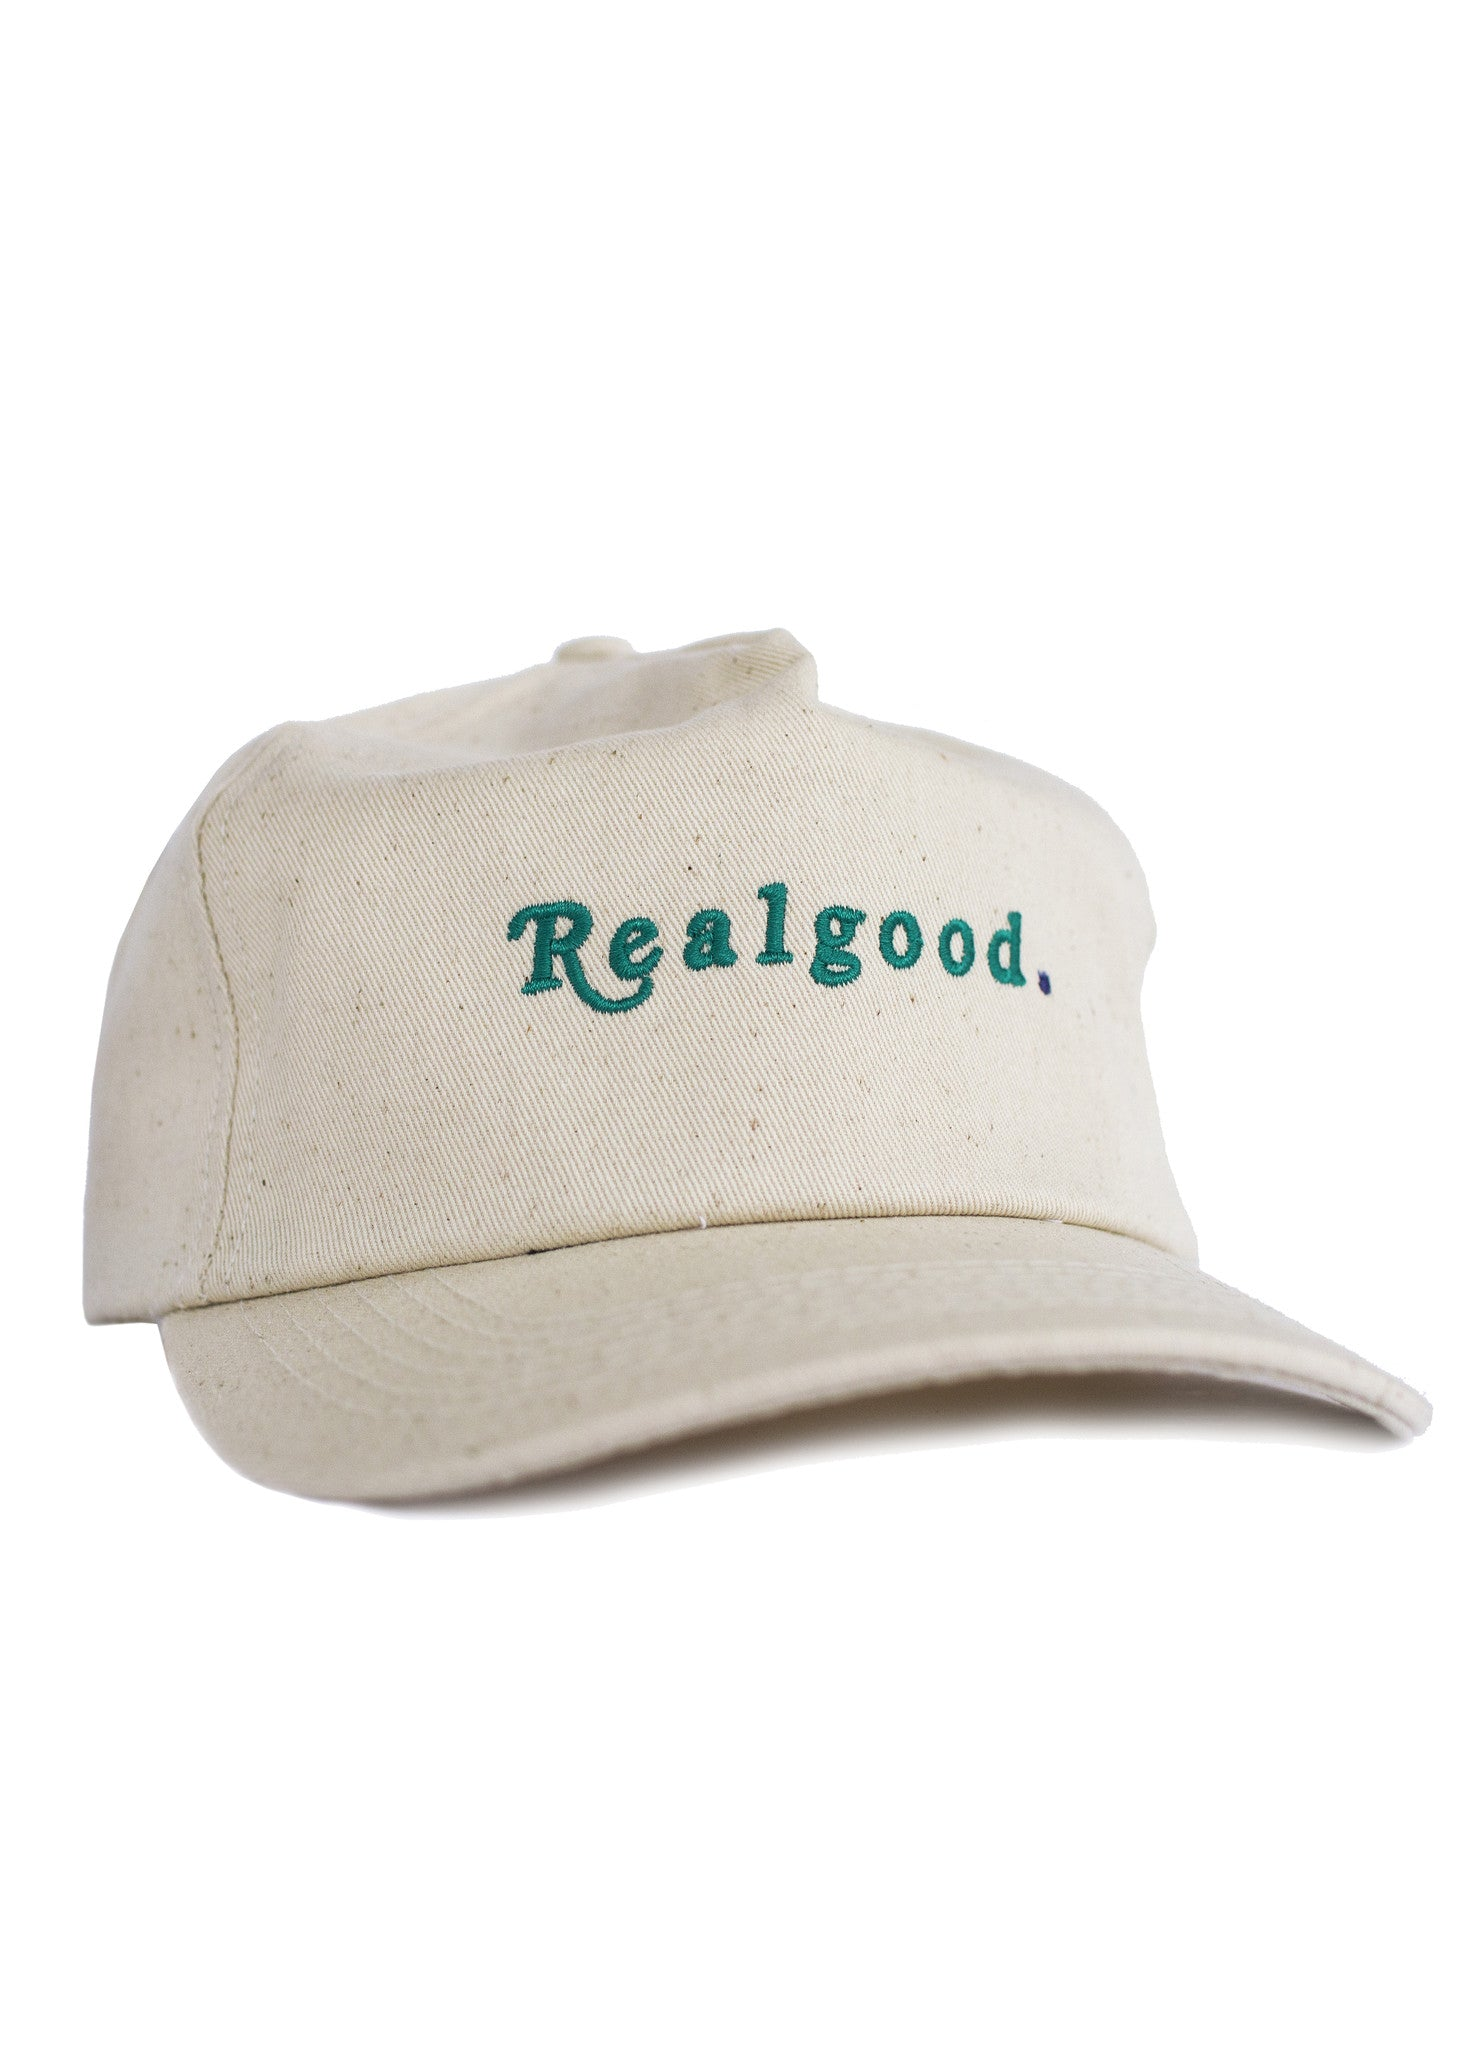 Realgood Strapback